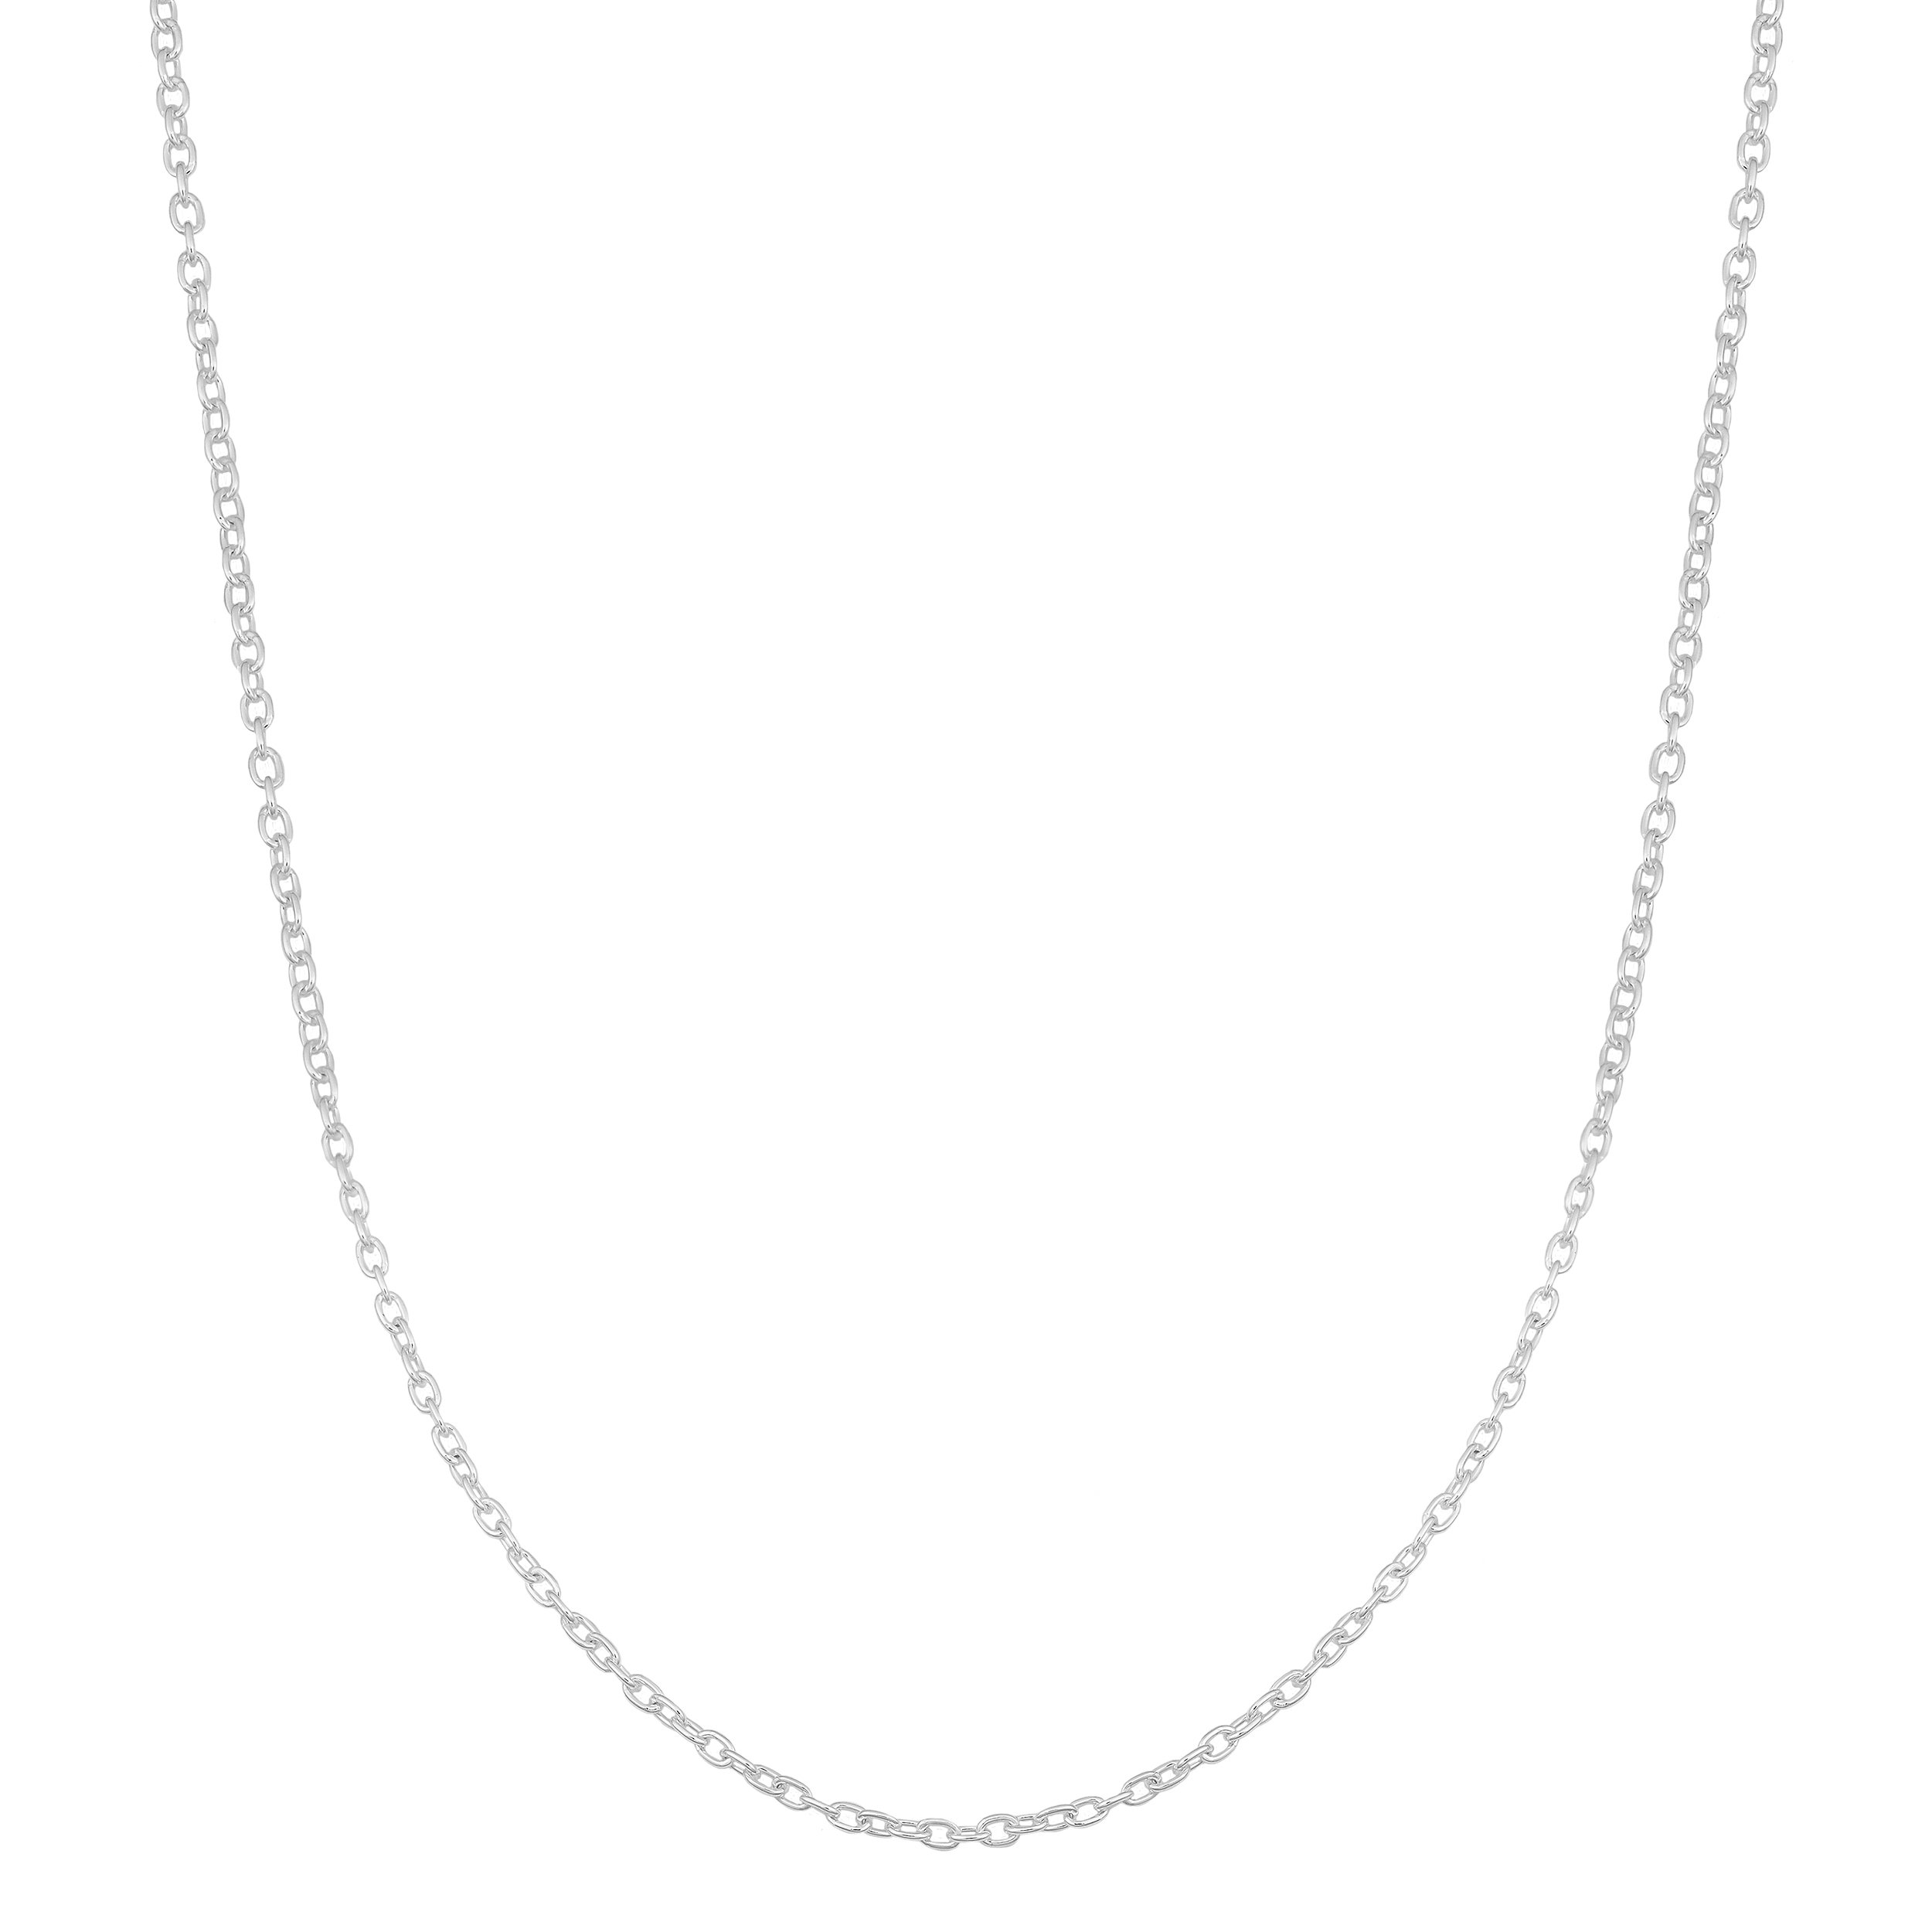 Kooljewelry Sterling Silver 1.2mm Round Cable Chain (24 inch)